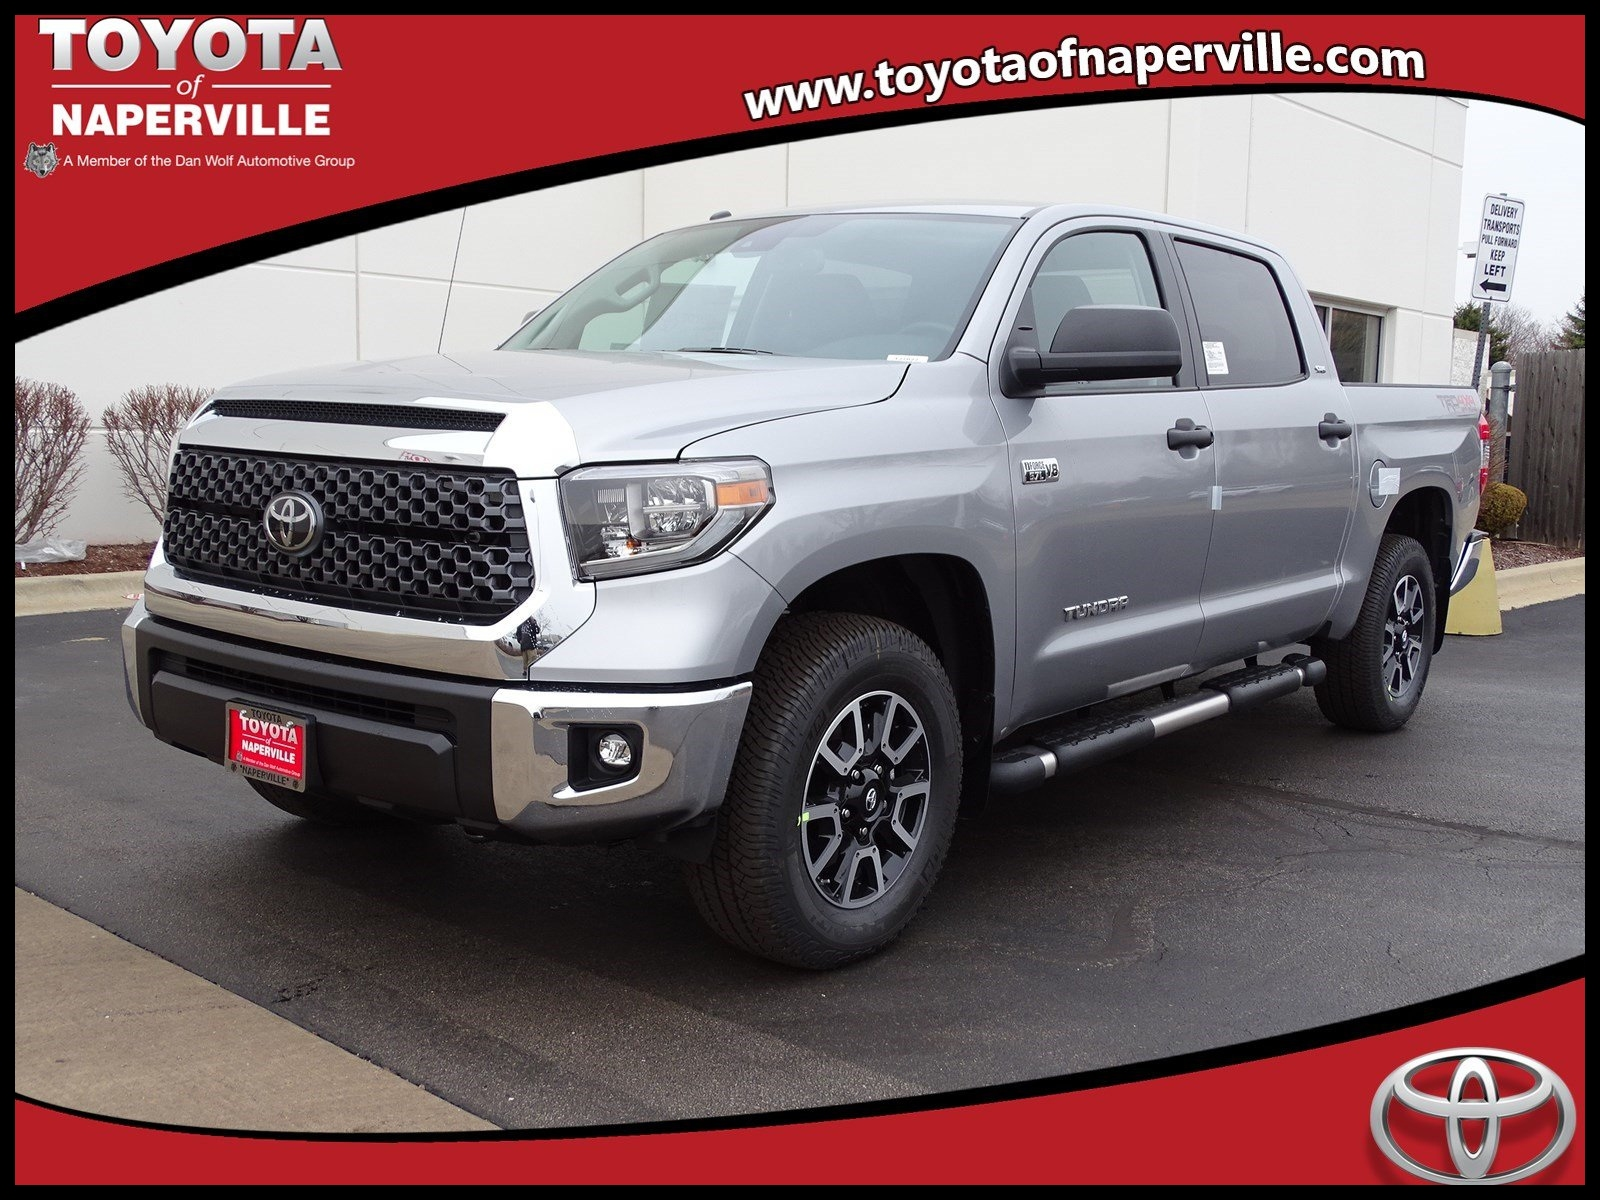 Hot New 2018 toyota Tundra Sr5 4d Crewmax In Naperville T Prices Reviews and